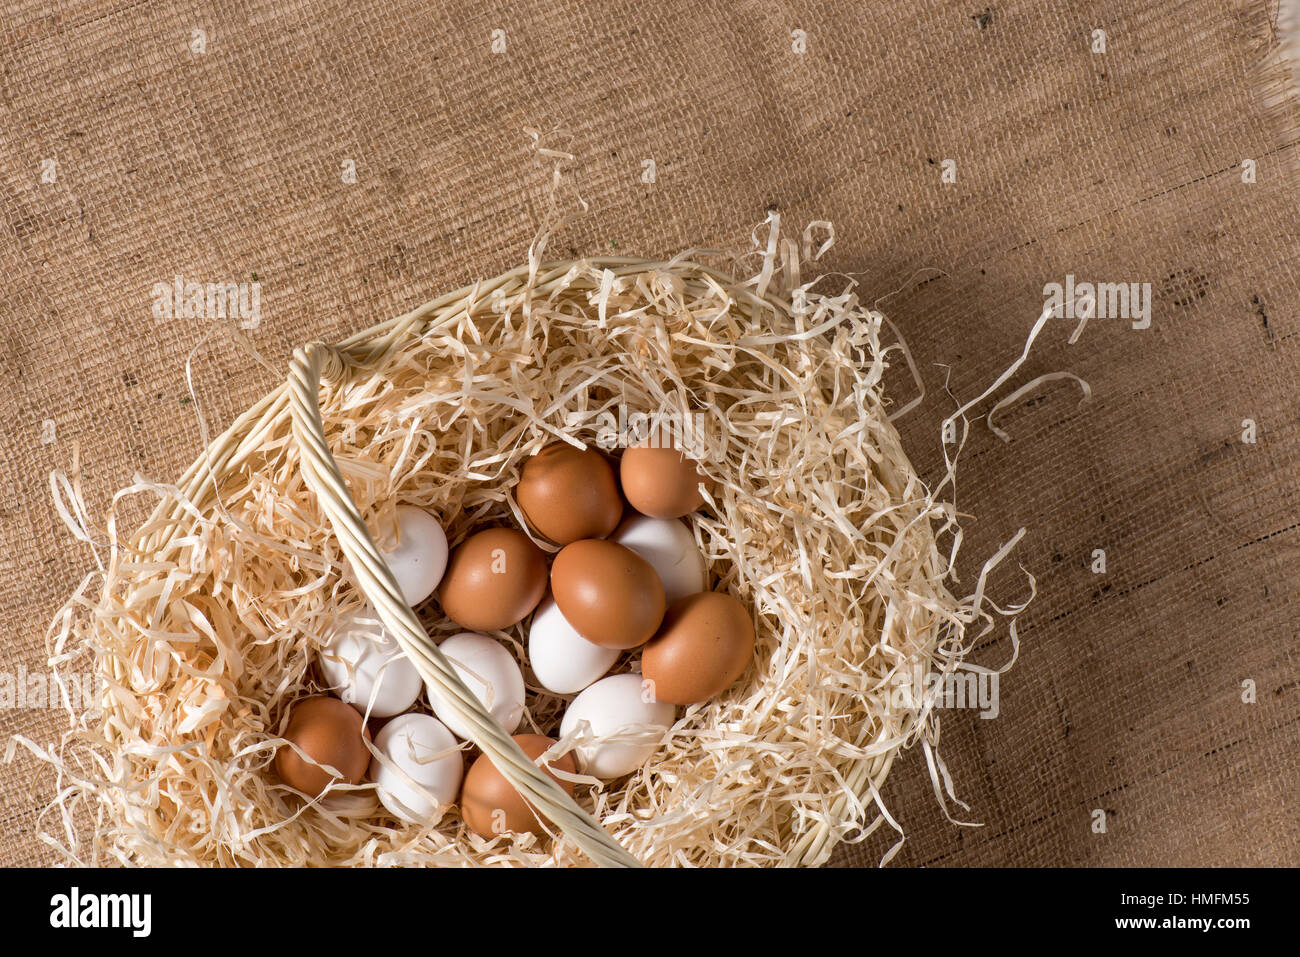 Chicken eggs in basket - Stock Image